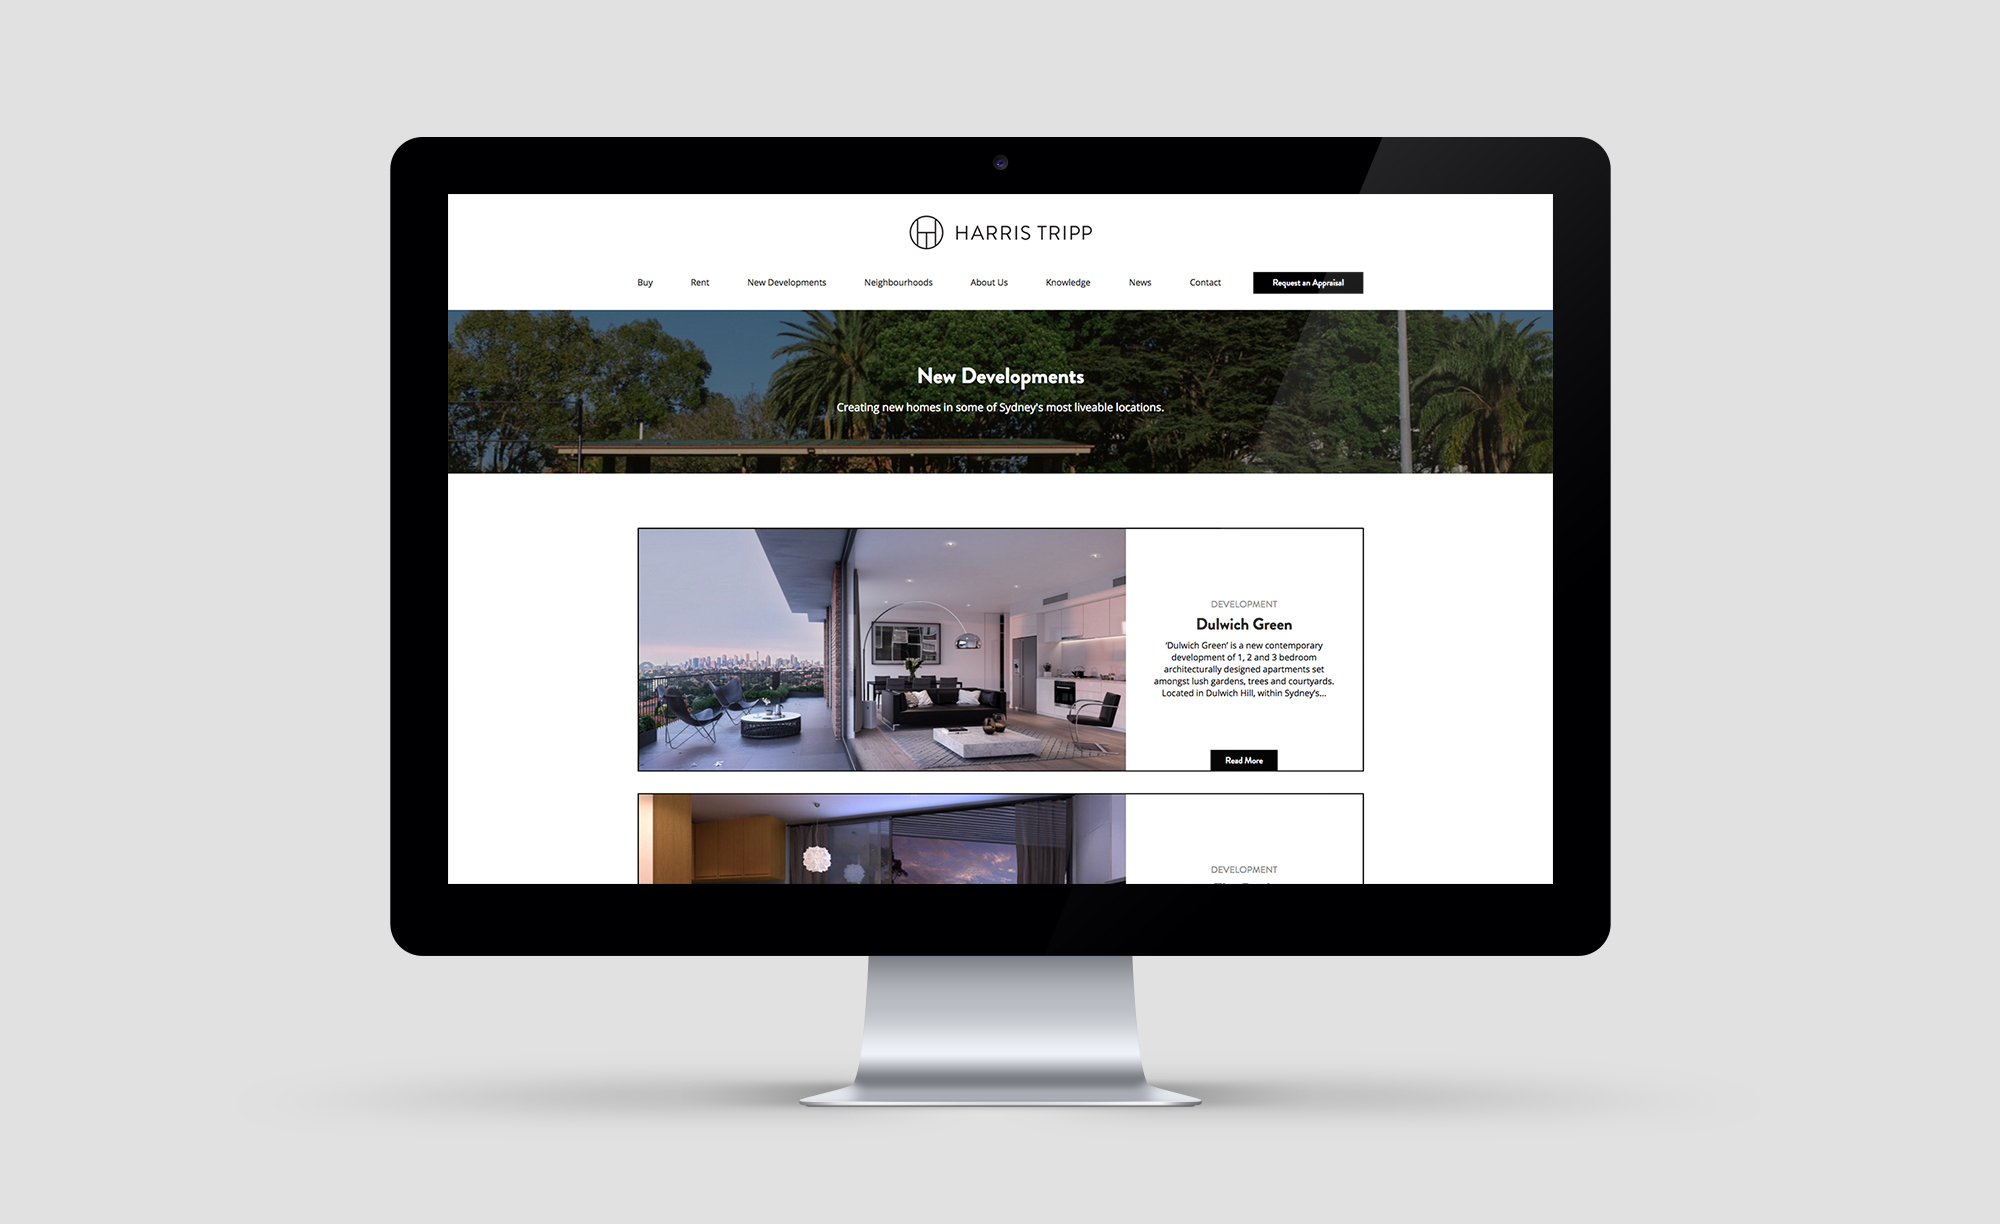 Yoke - One of the best real estate website design companies